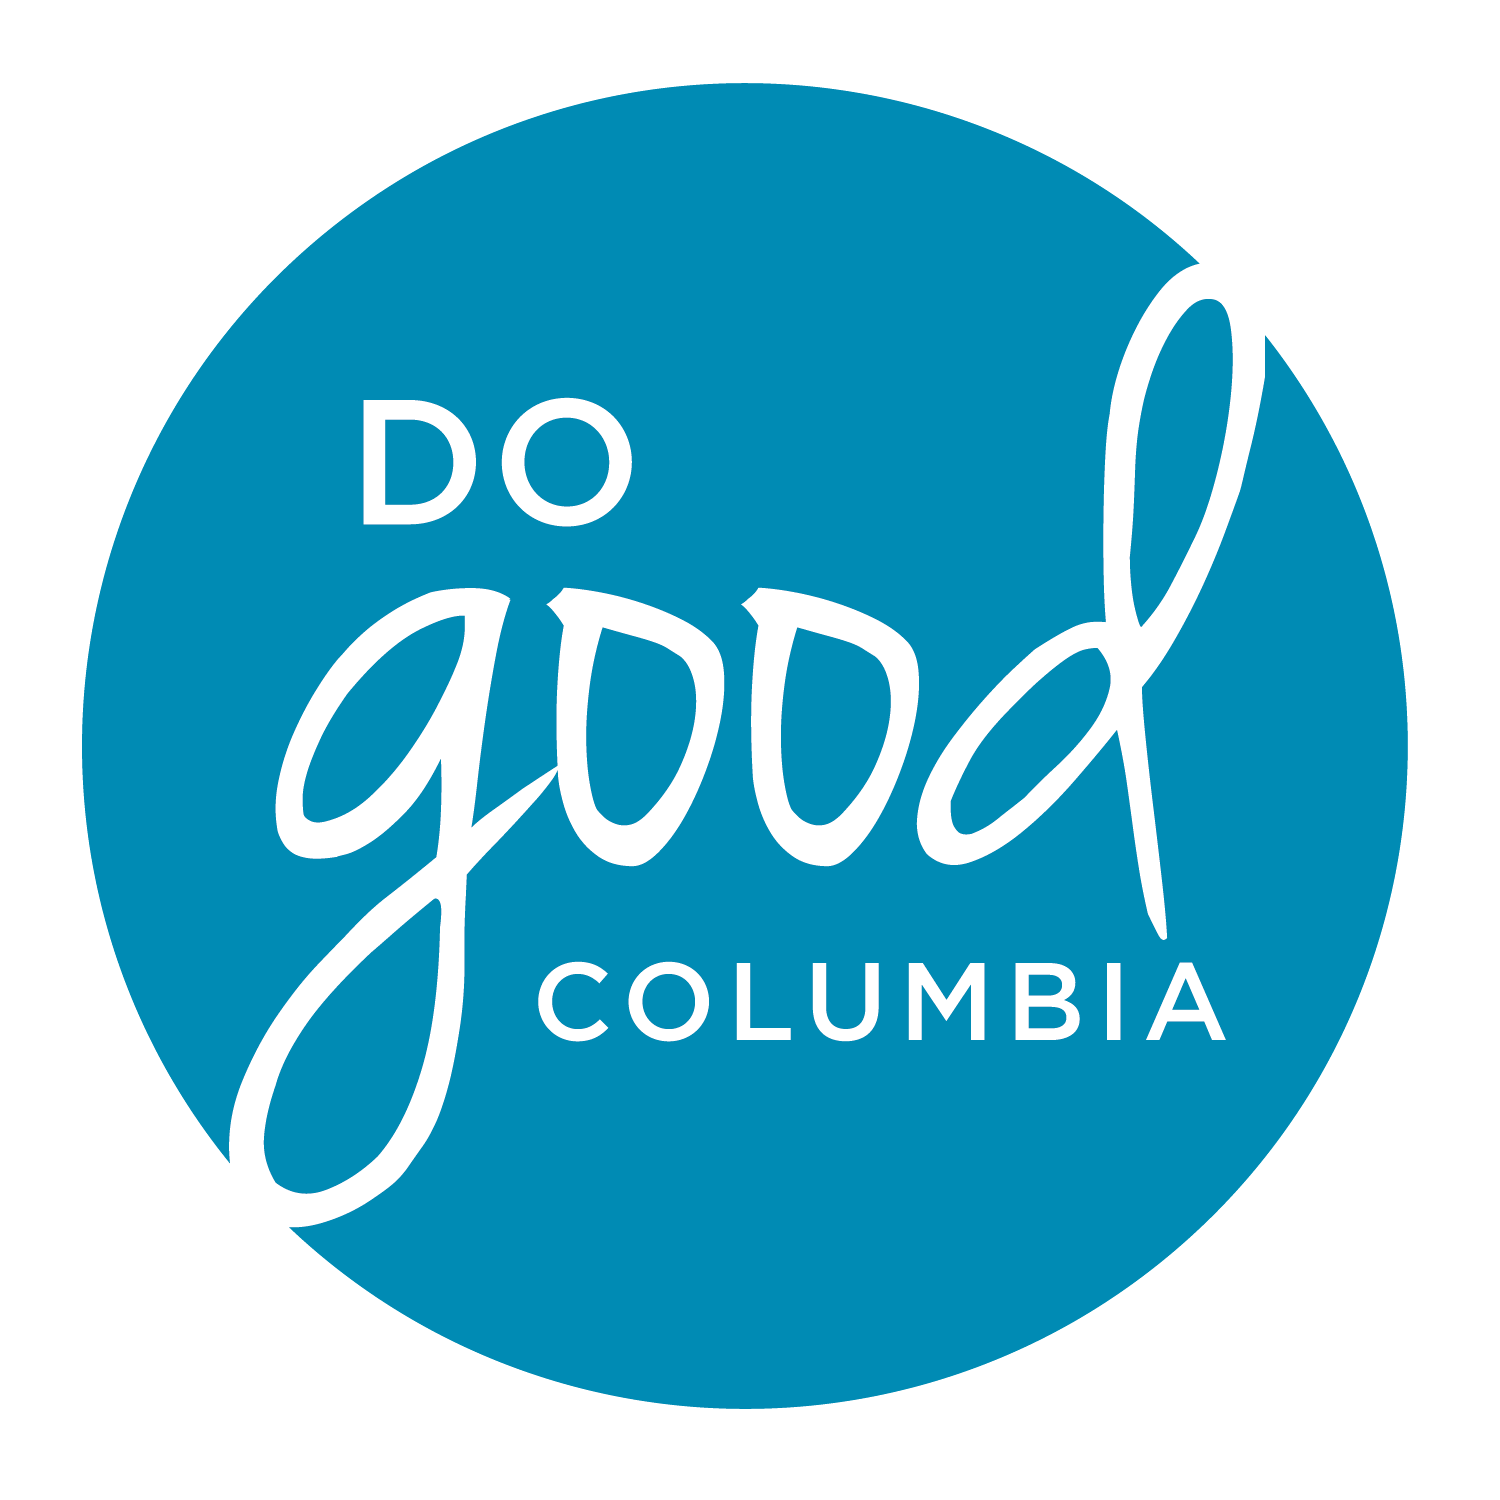 Do Good Columbia